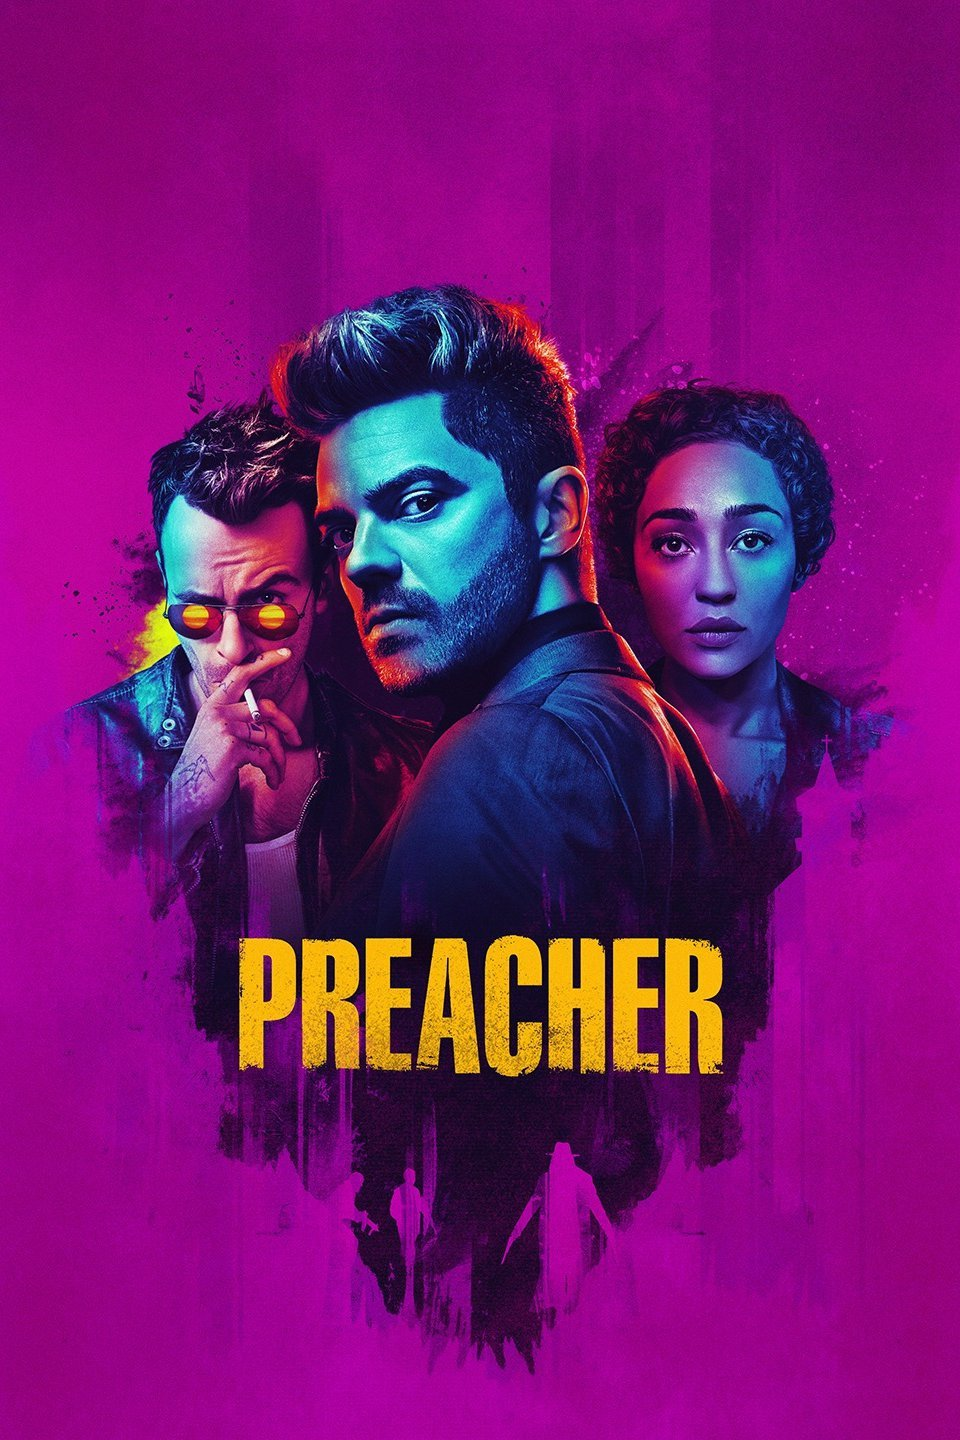 Preacher Season 2 Episode 1 Download HDTV 480p & 720p